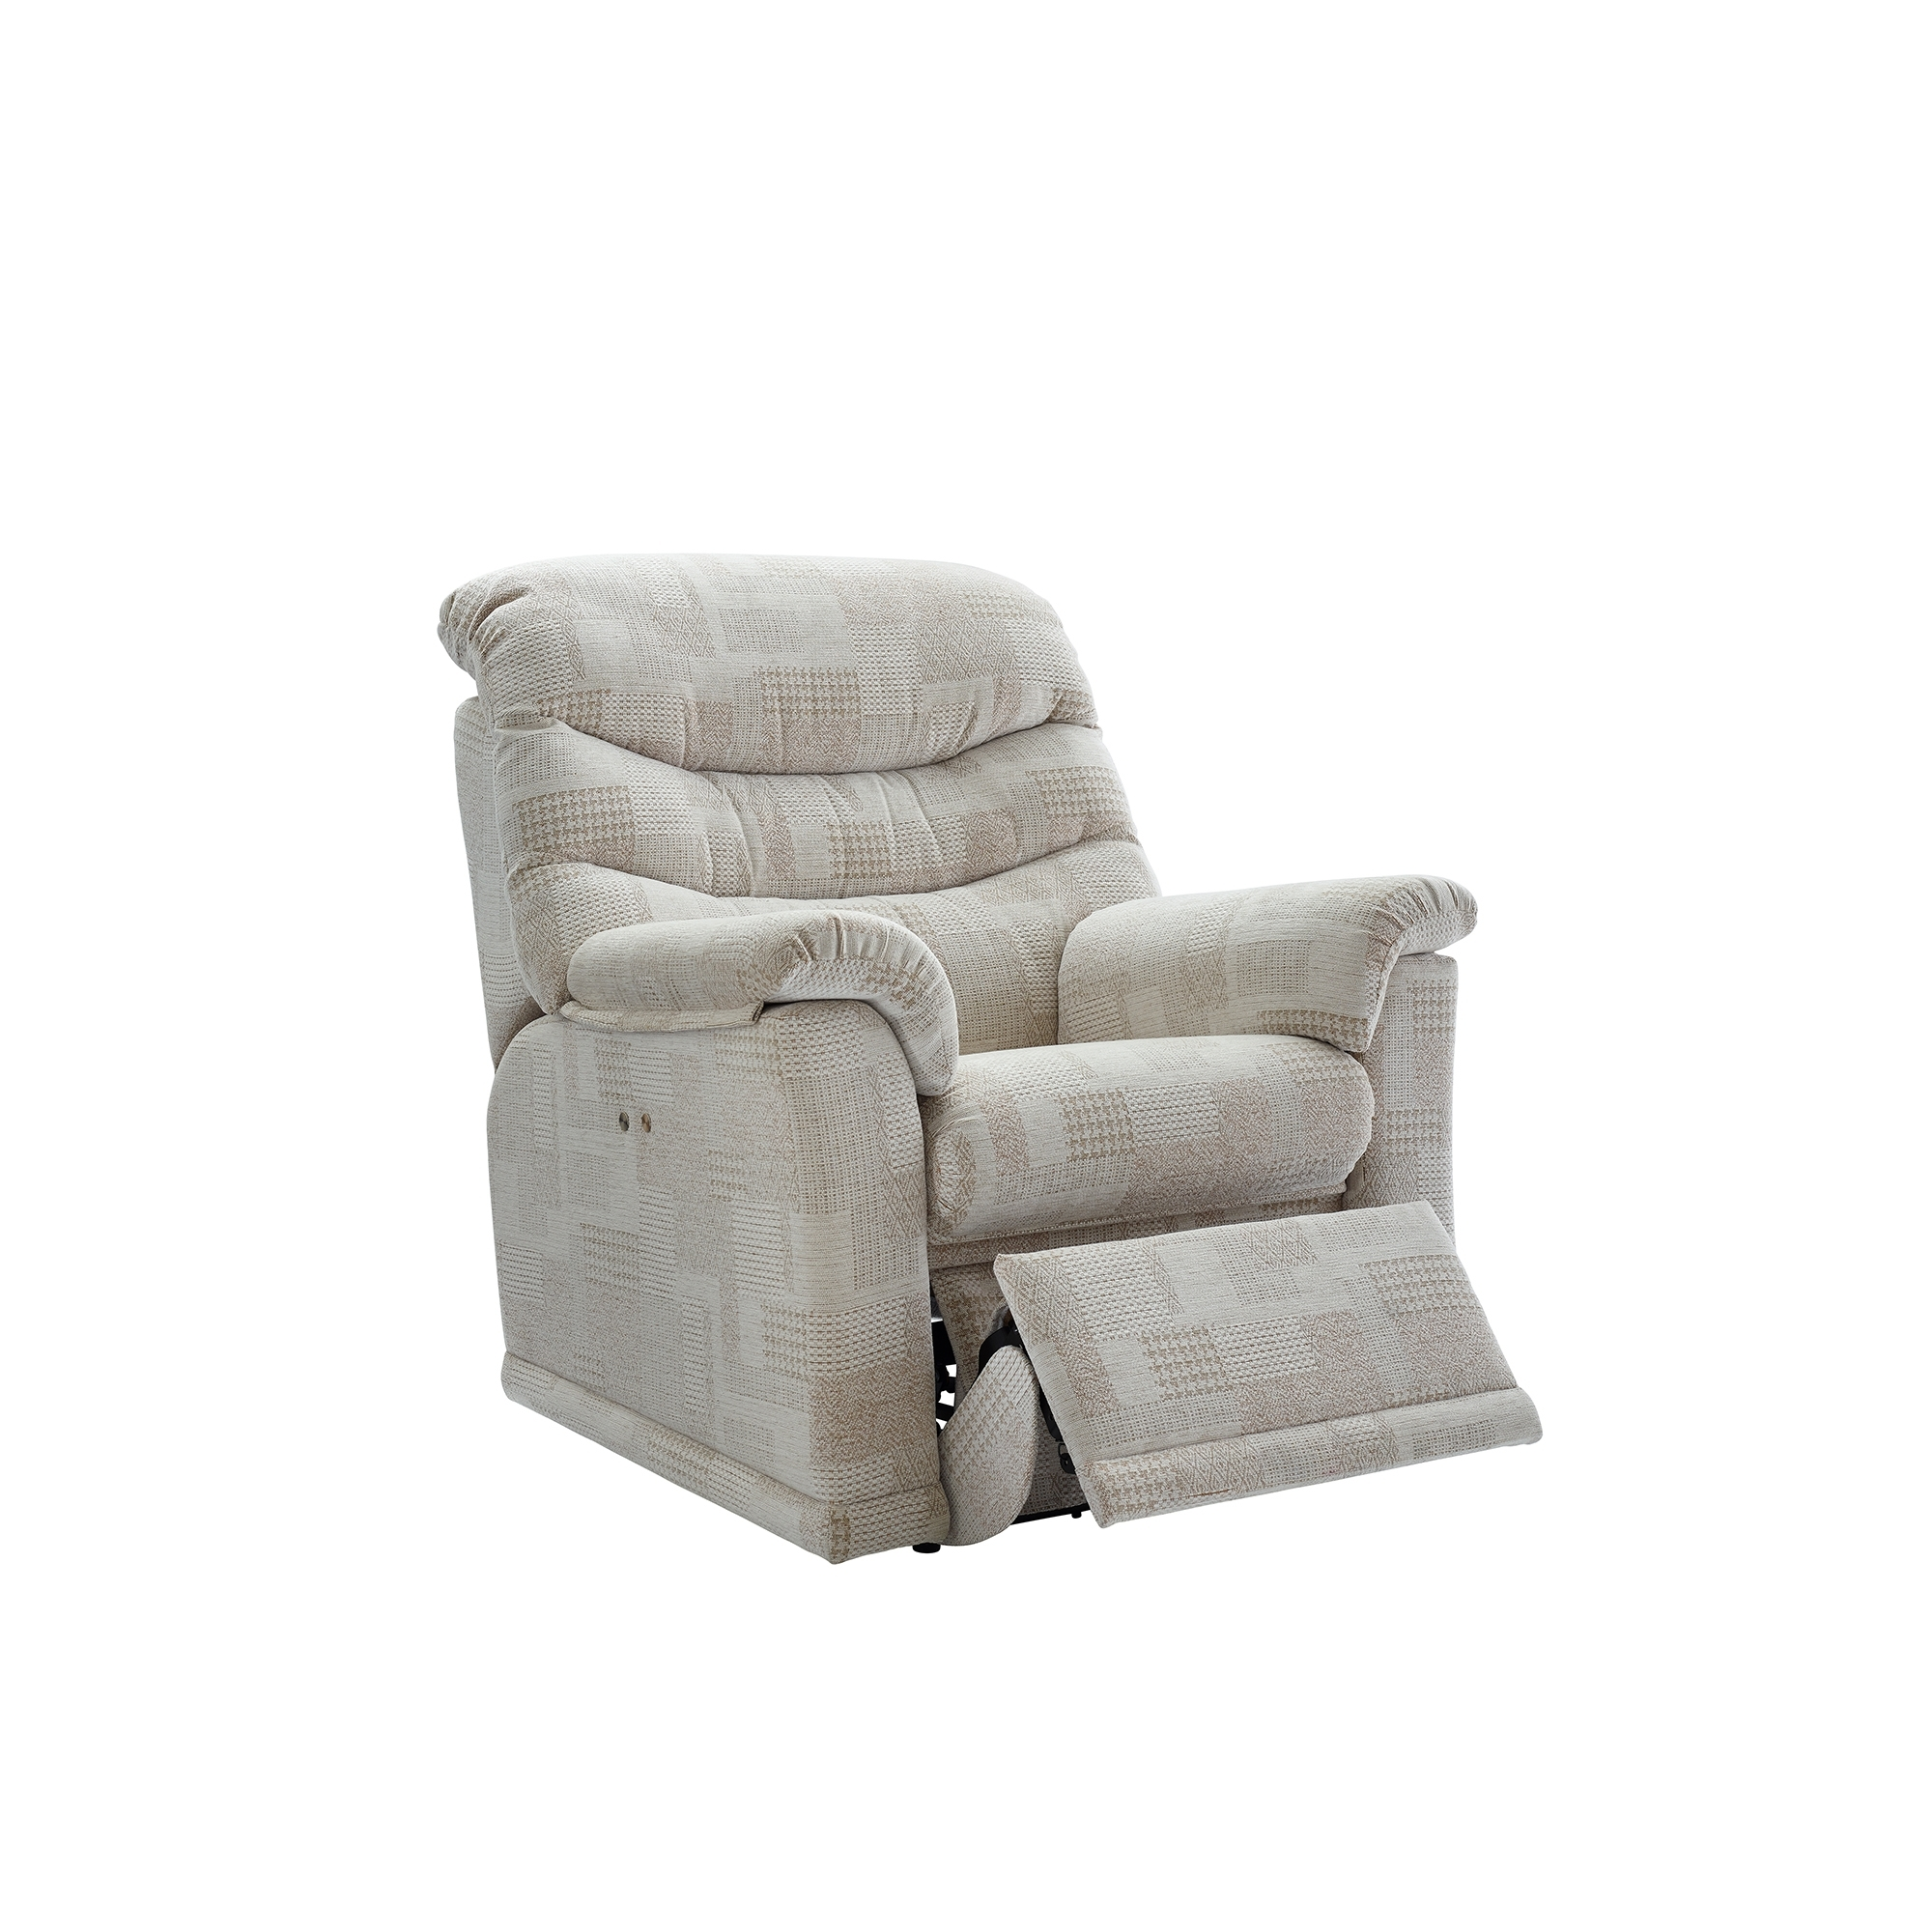 G Plan Malvern Power Recliner Armchair - All Chairs ...